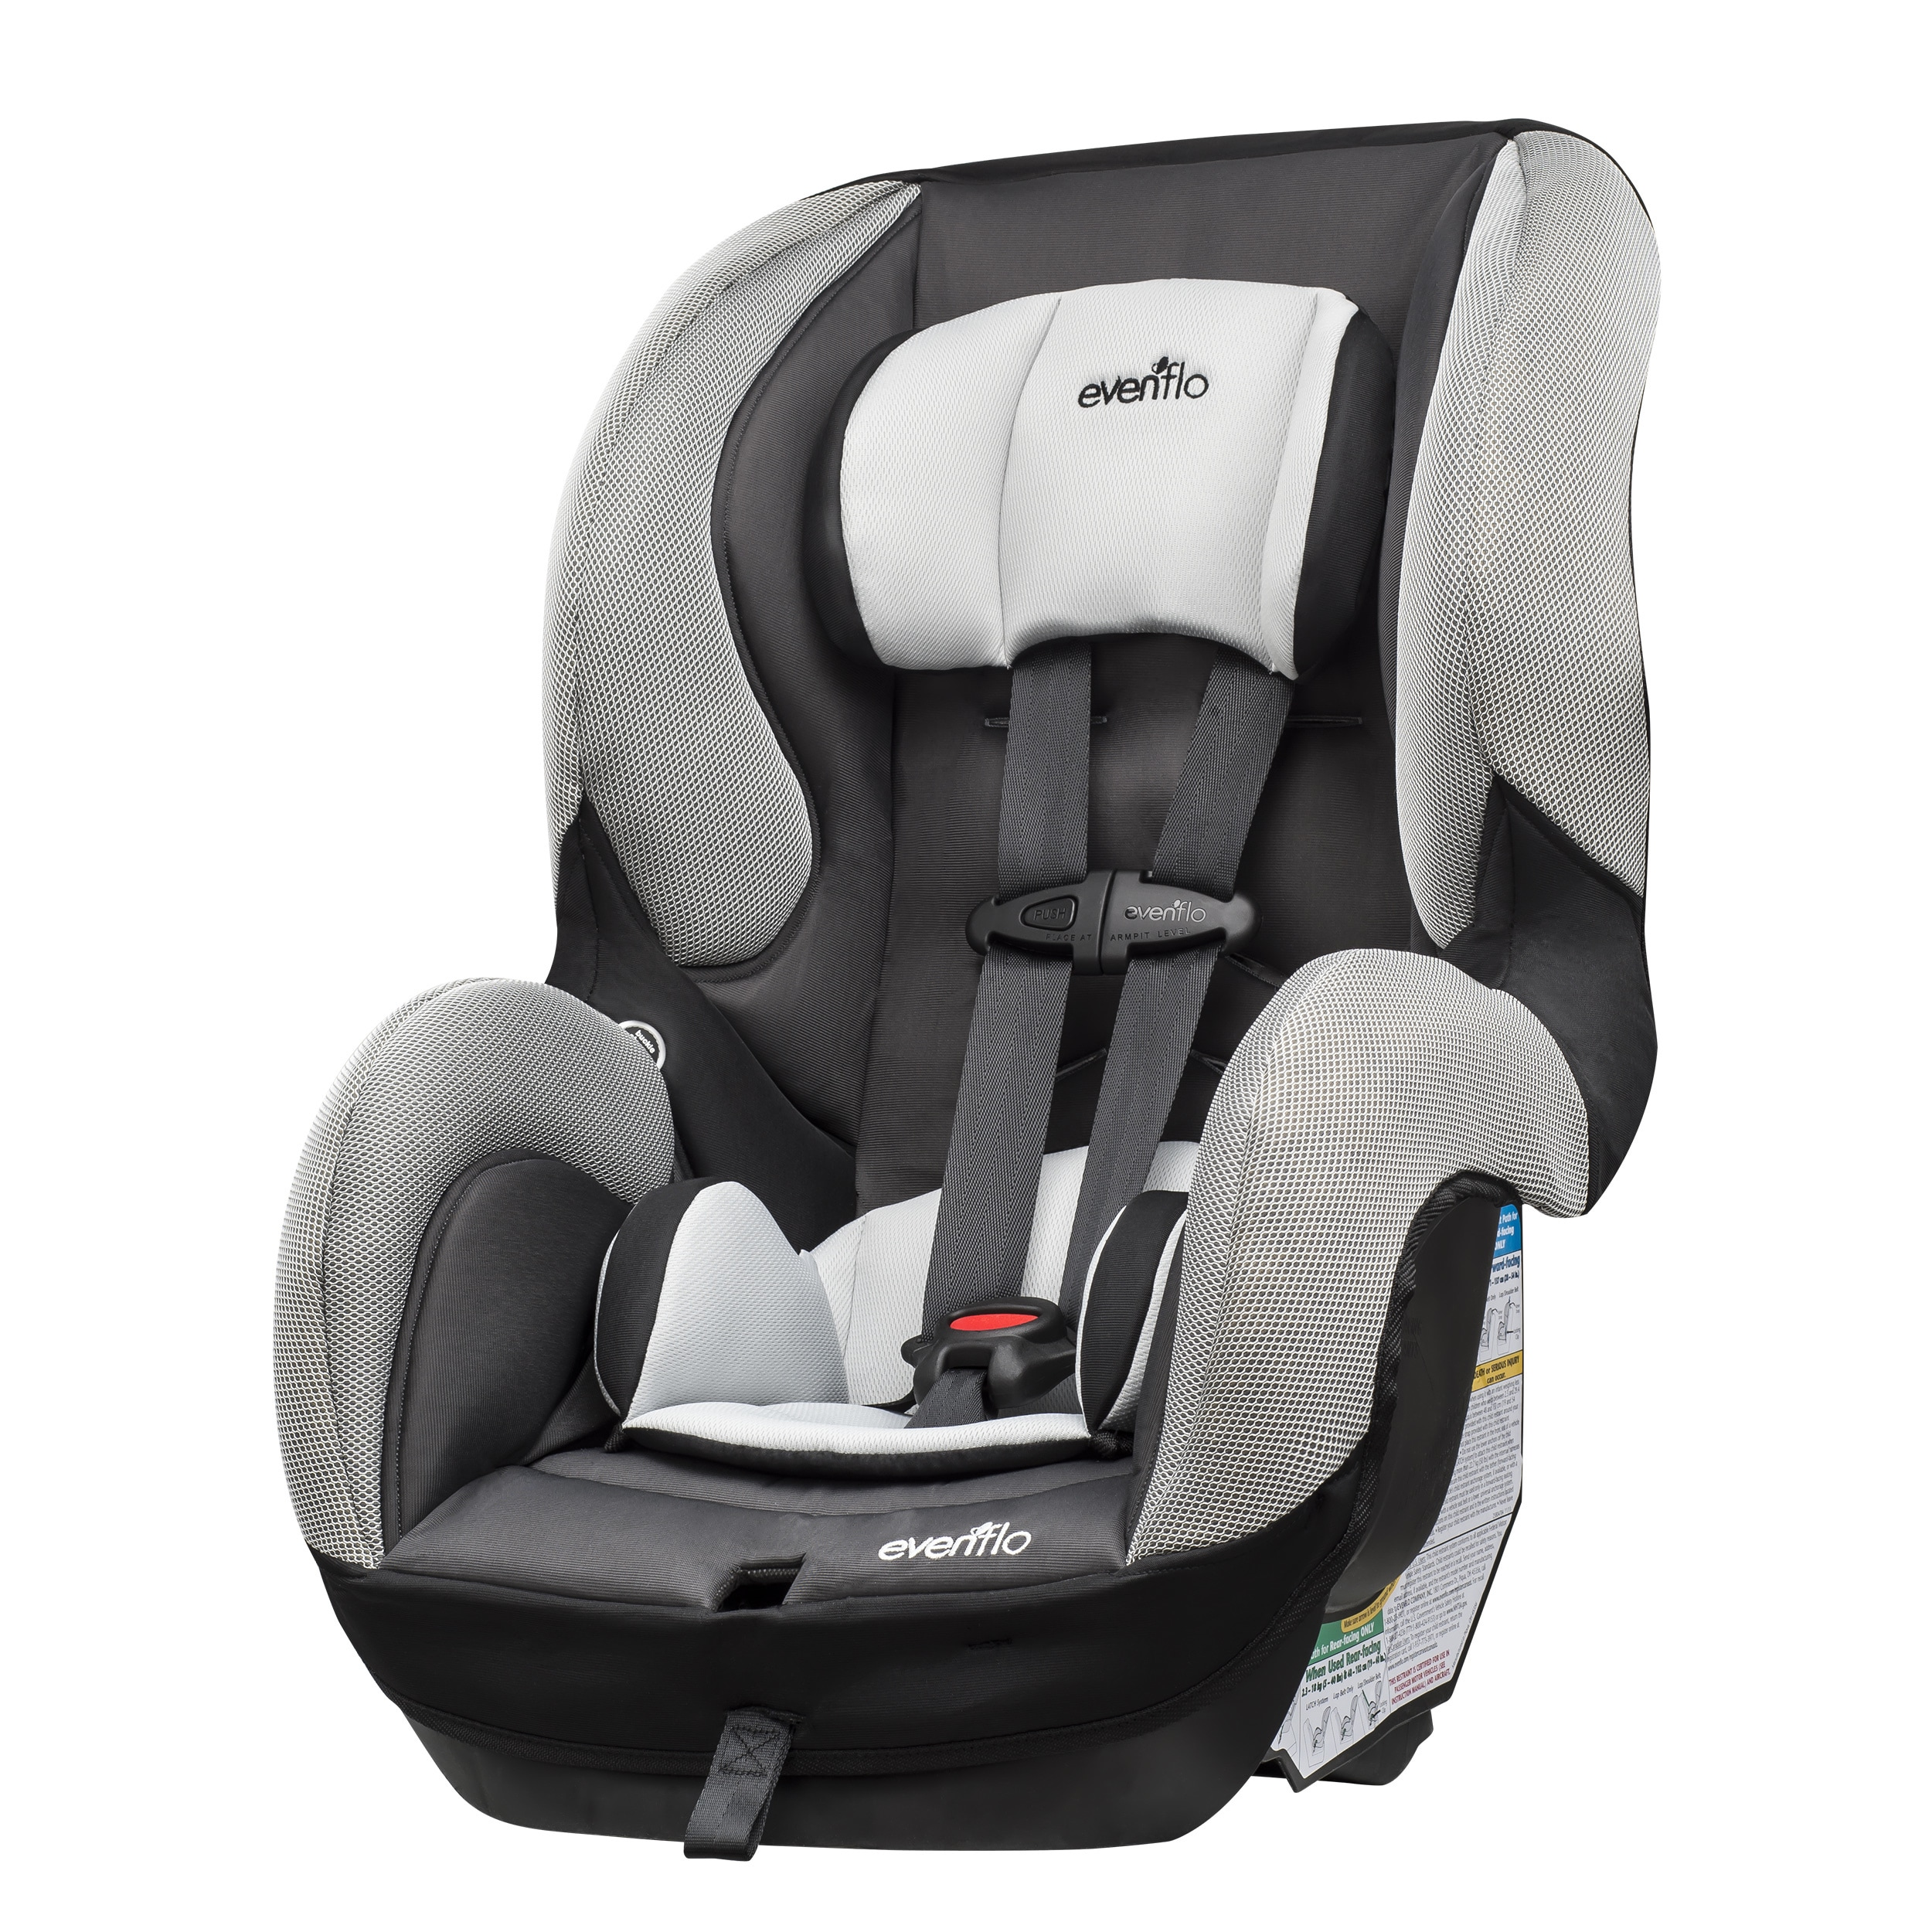 Evenflo Sureride 65 Dlx Convertible Car Seat In Windsor Free Shipping Today 11148794